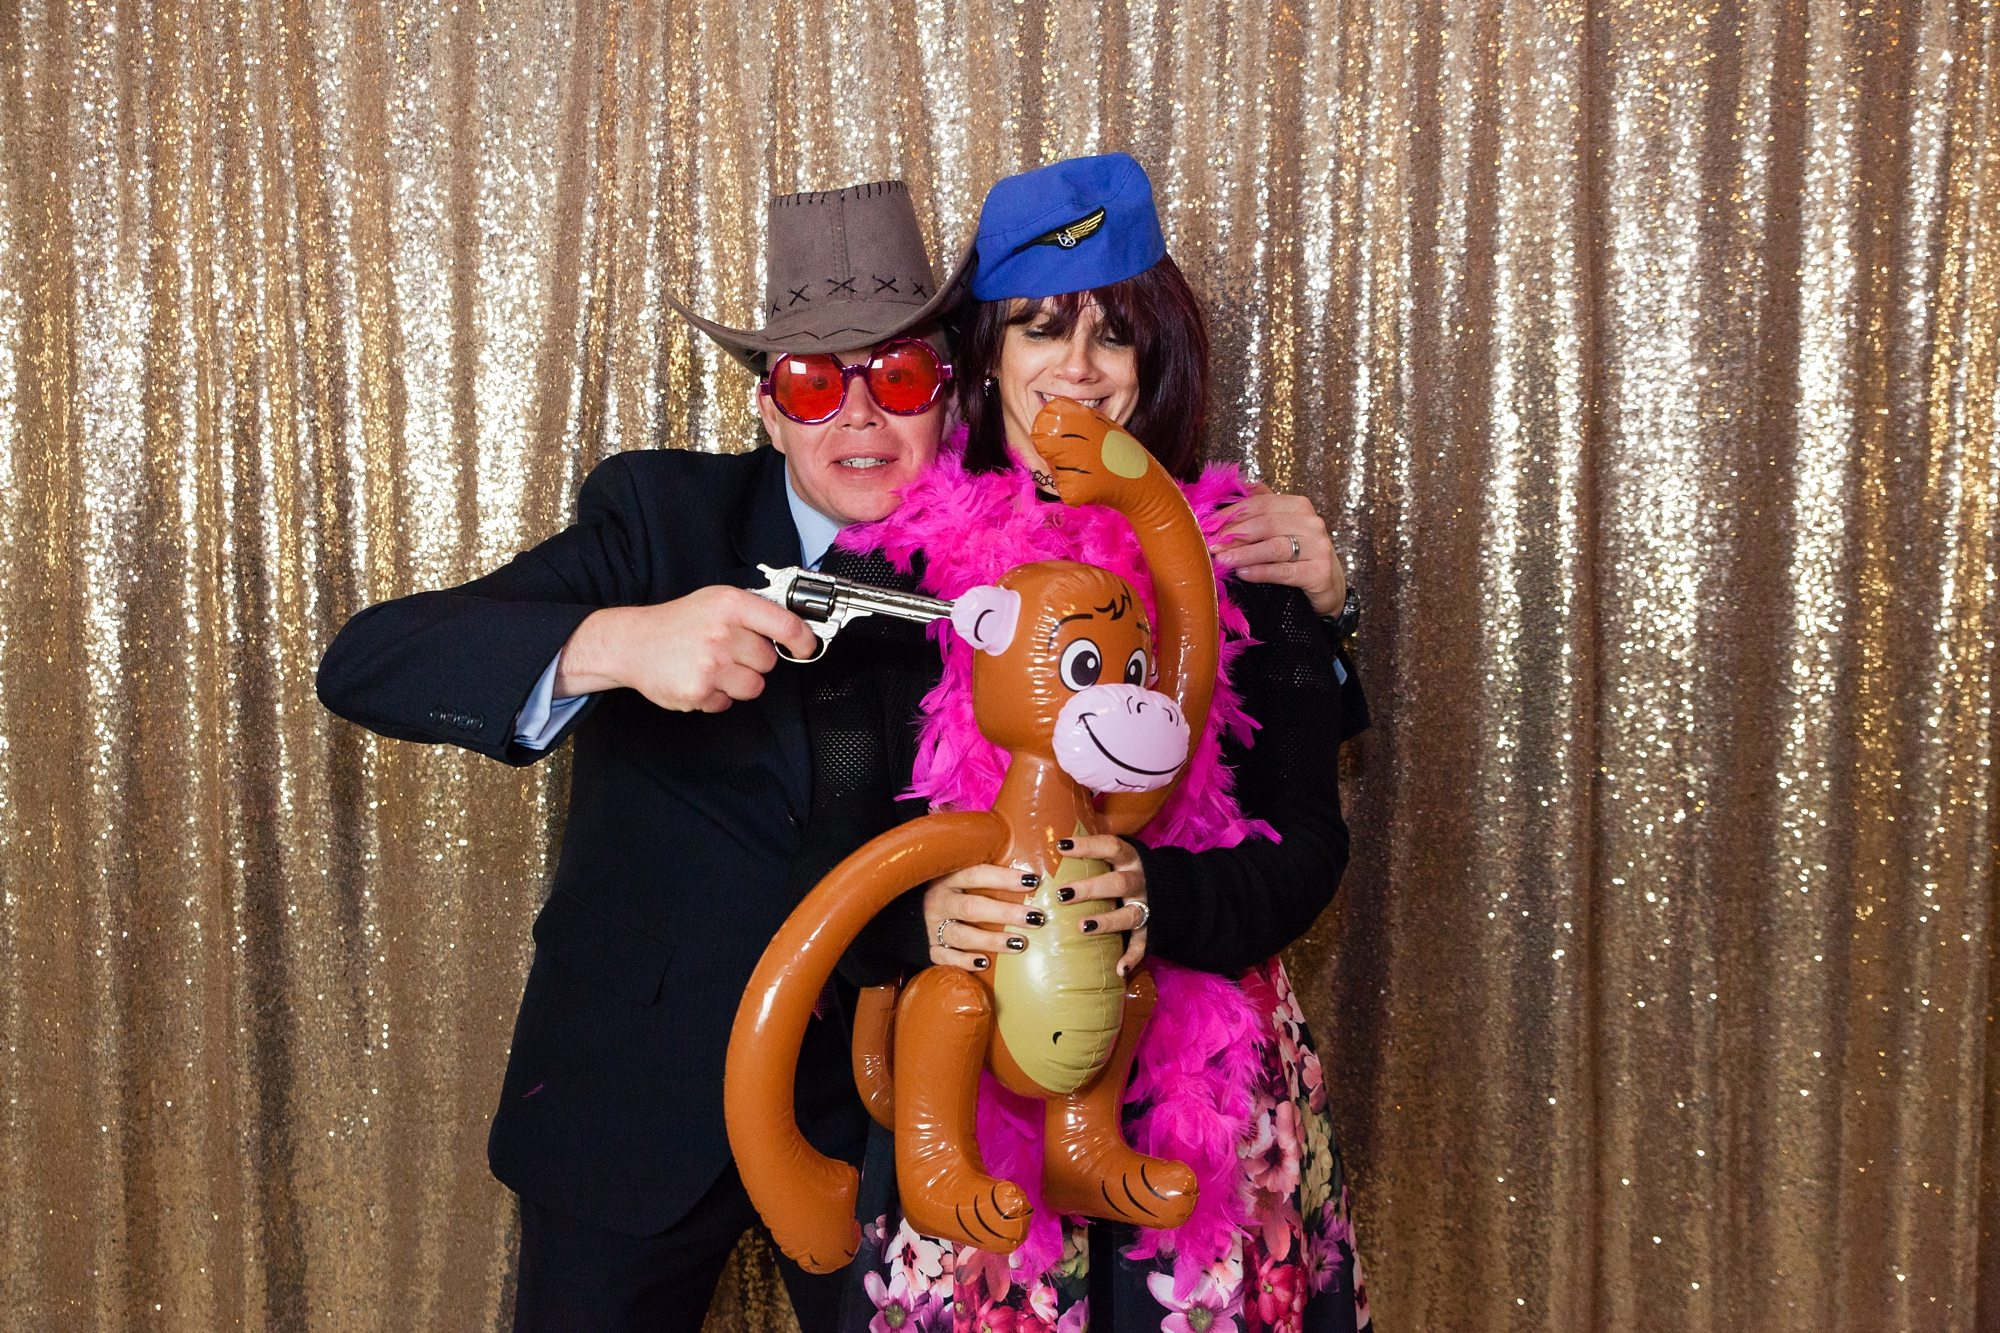 couple with glittery backdrop holding bowa and inflatable monkey with gun